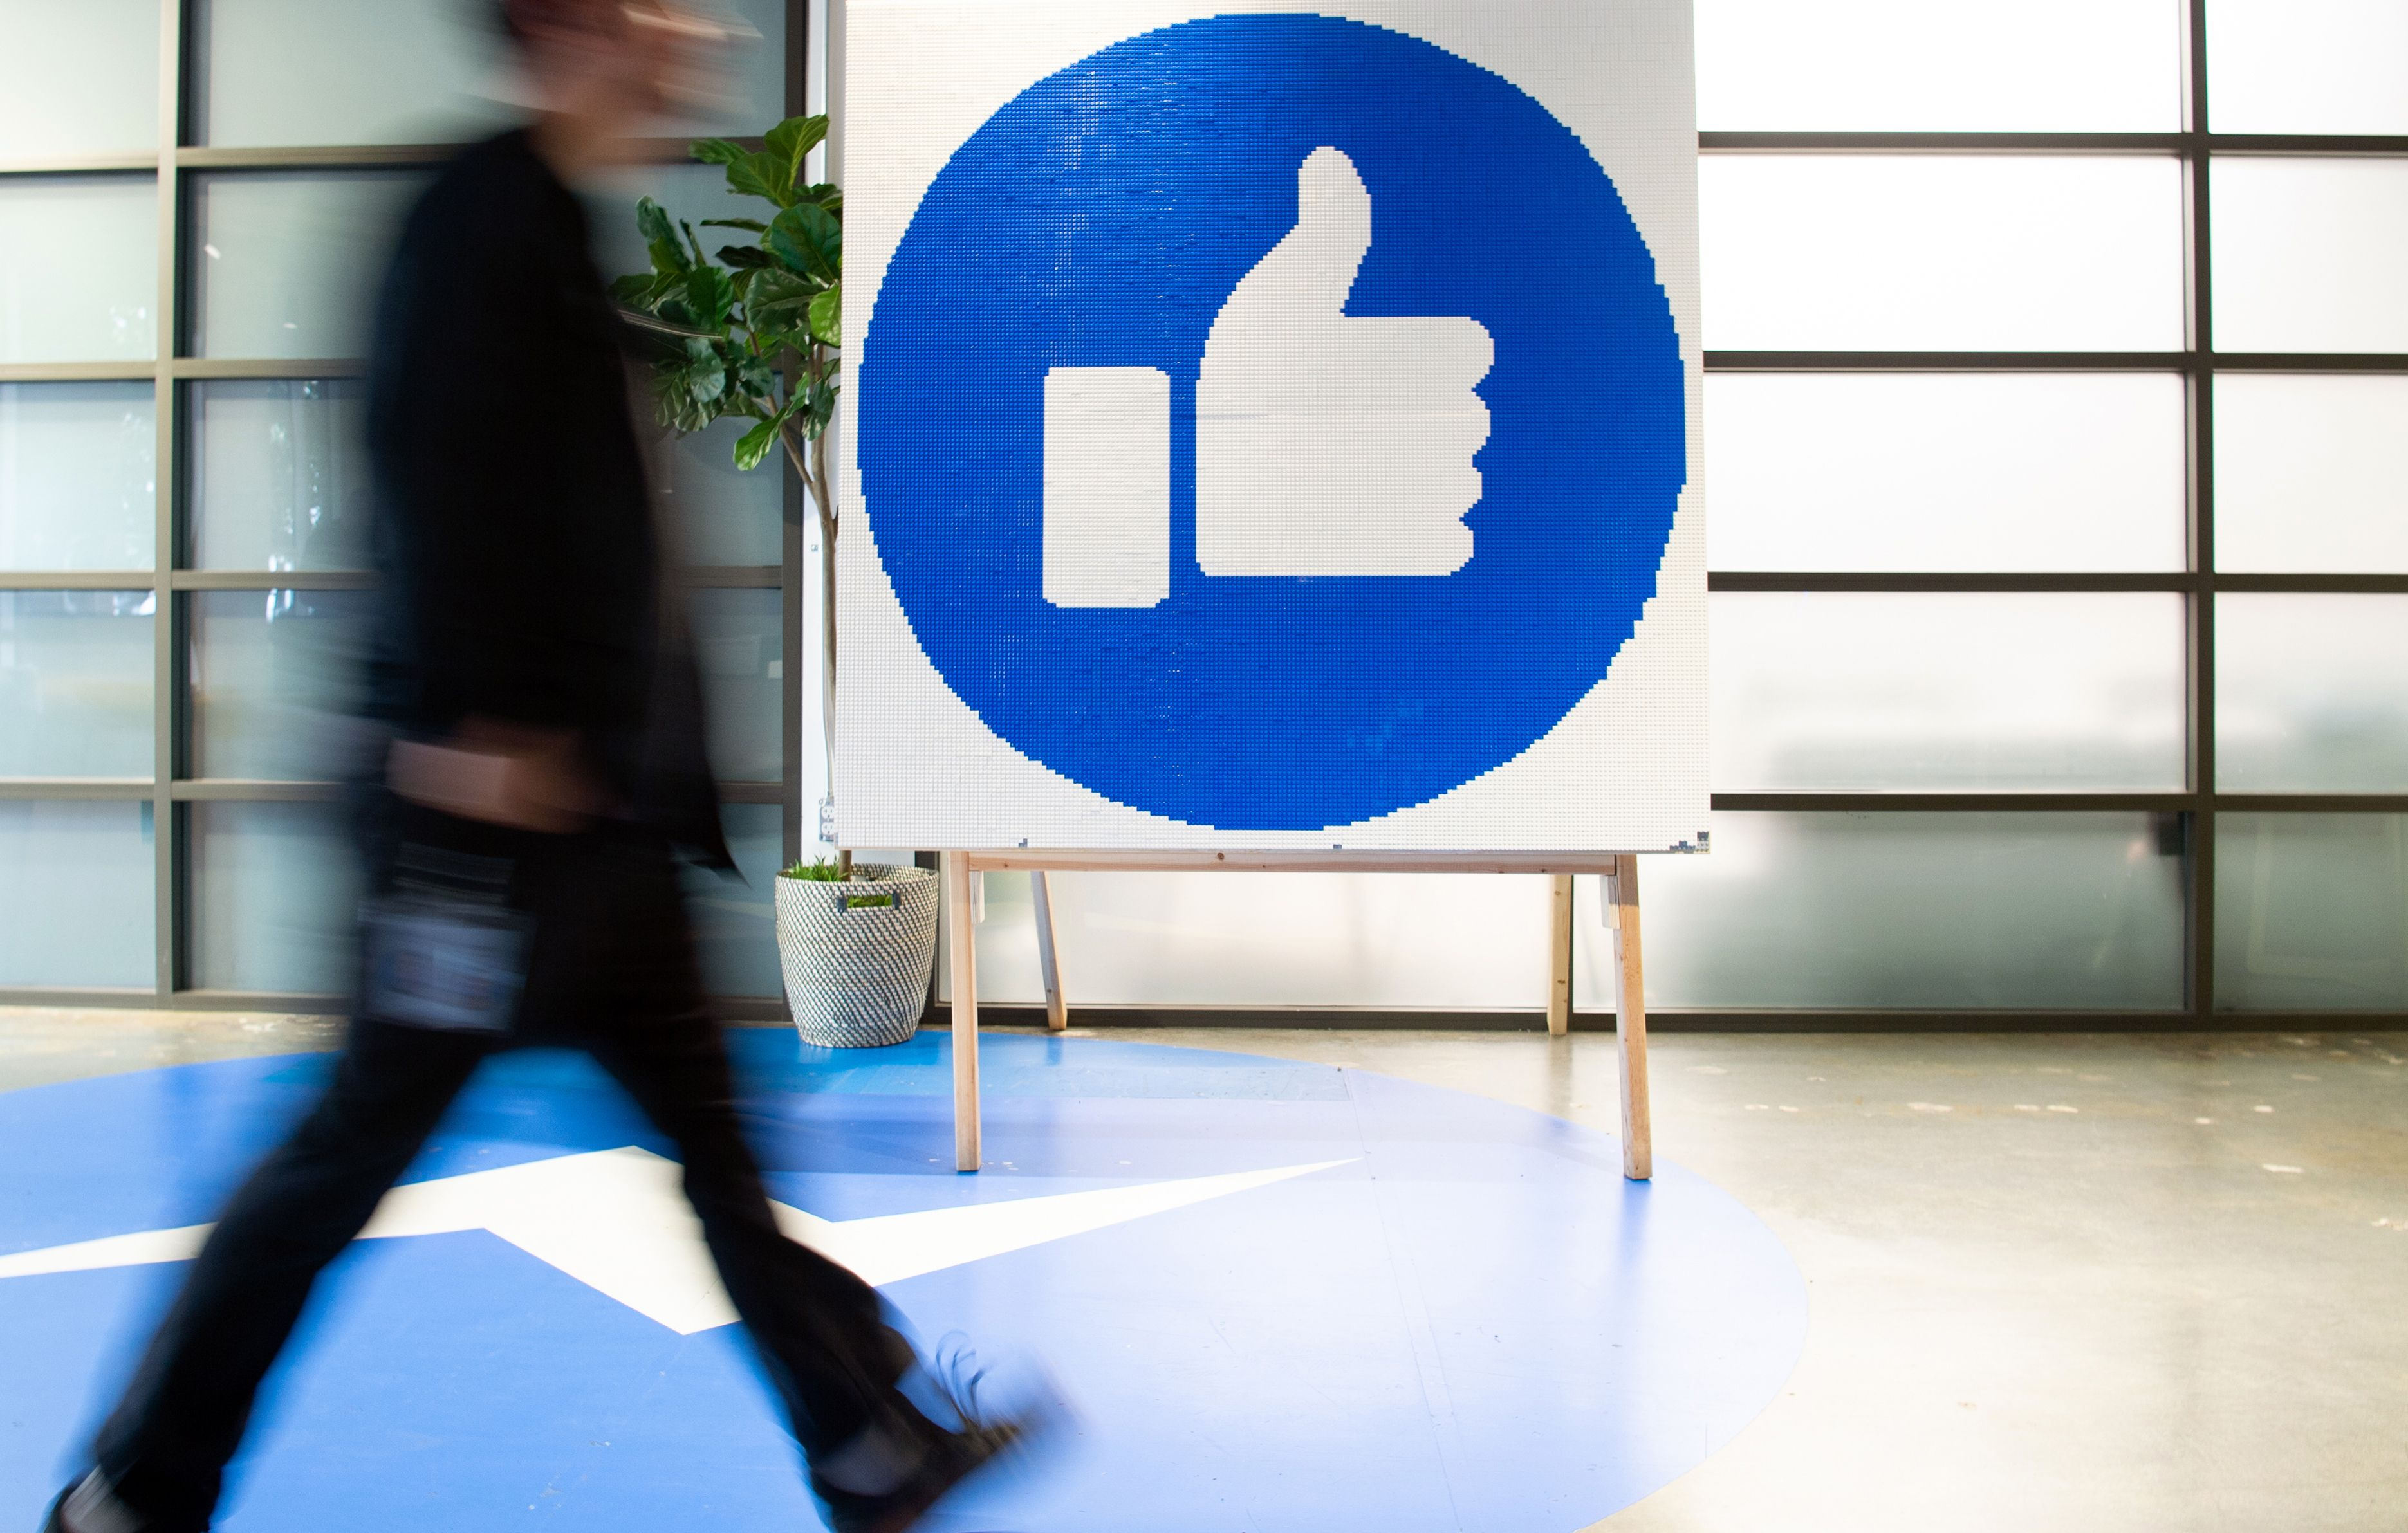 A blurry capture of a man walking past a large blue-and-white Facebook logo on display in a lobby.